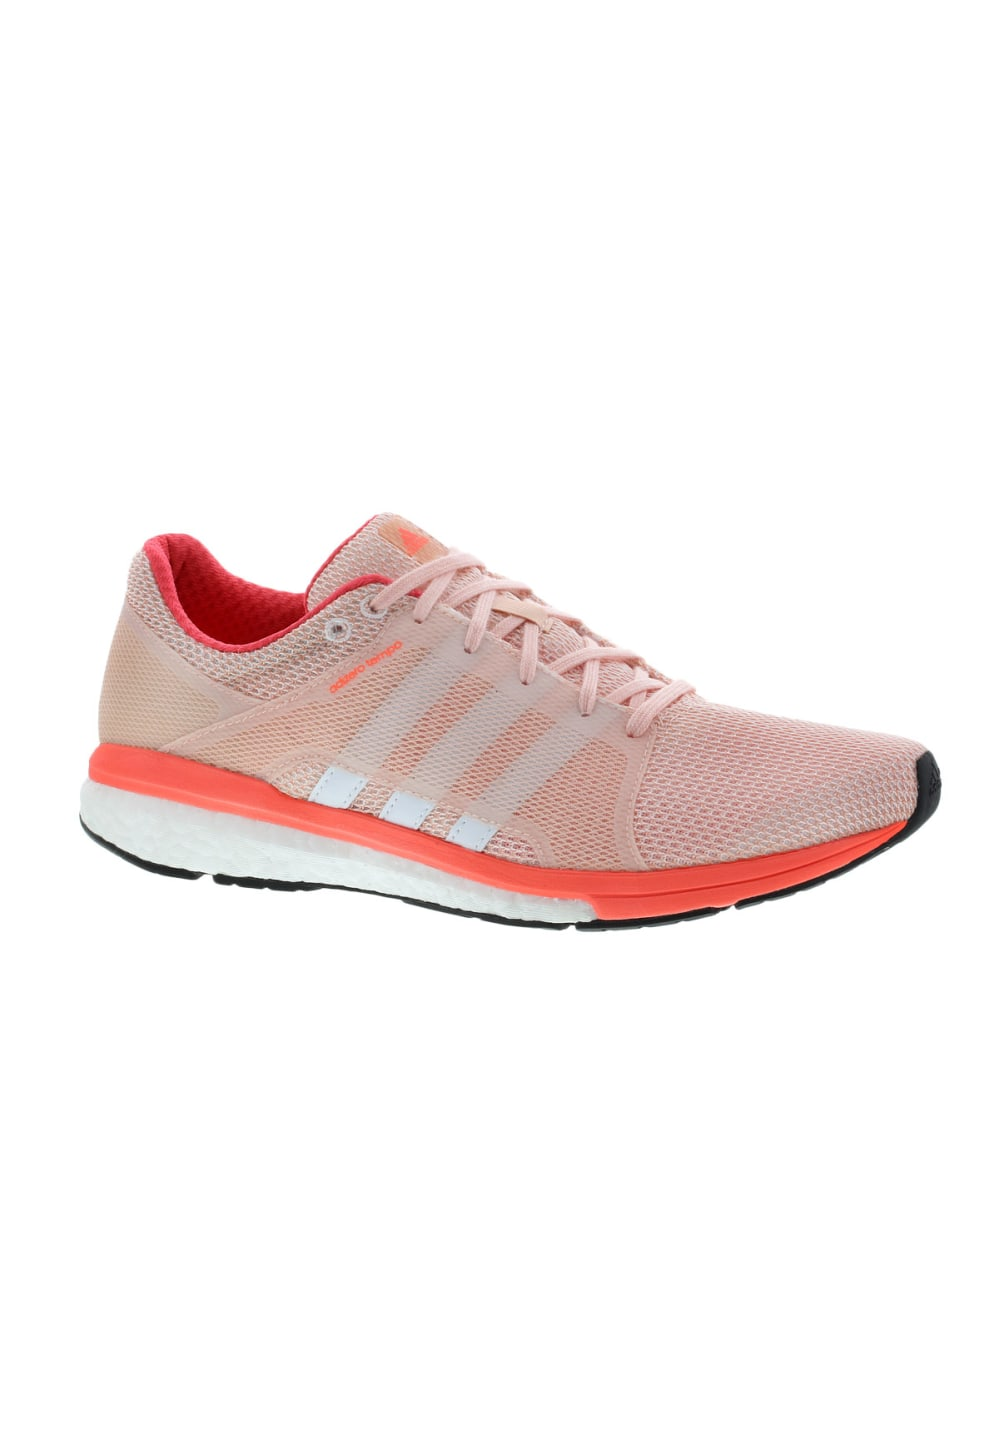 official photos 330f3 3aa97 adidas adiZero Tempo 8 SSF - Running shoes for Women - Beige